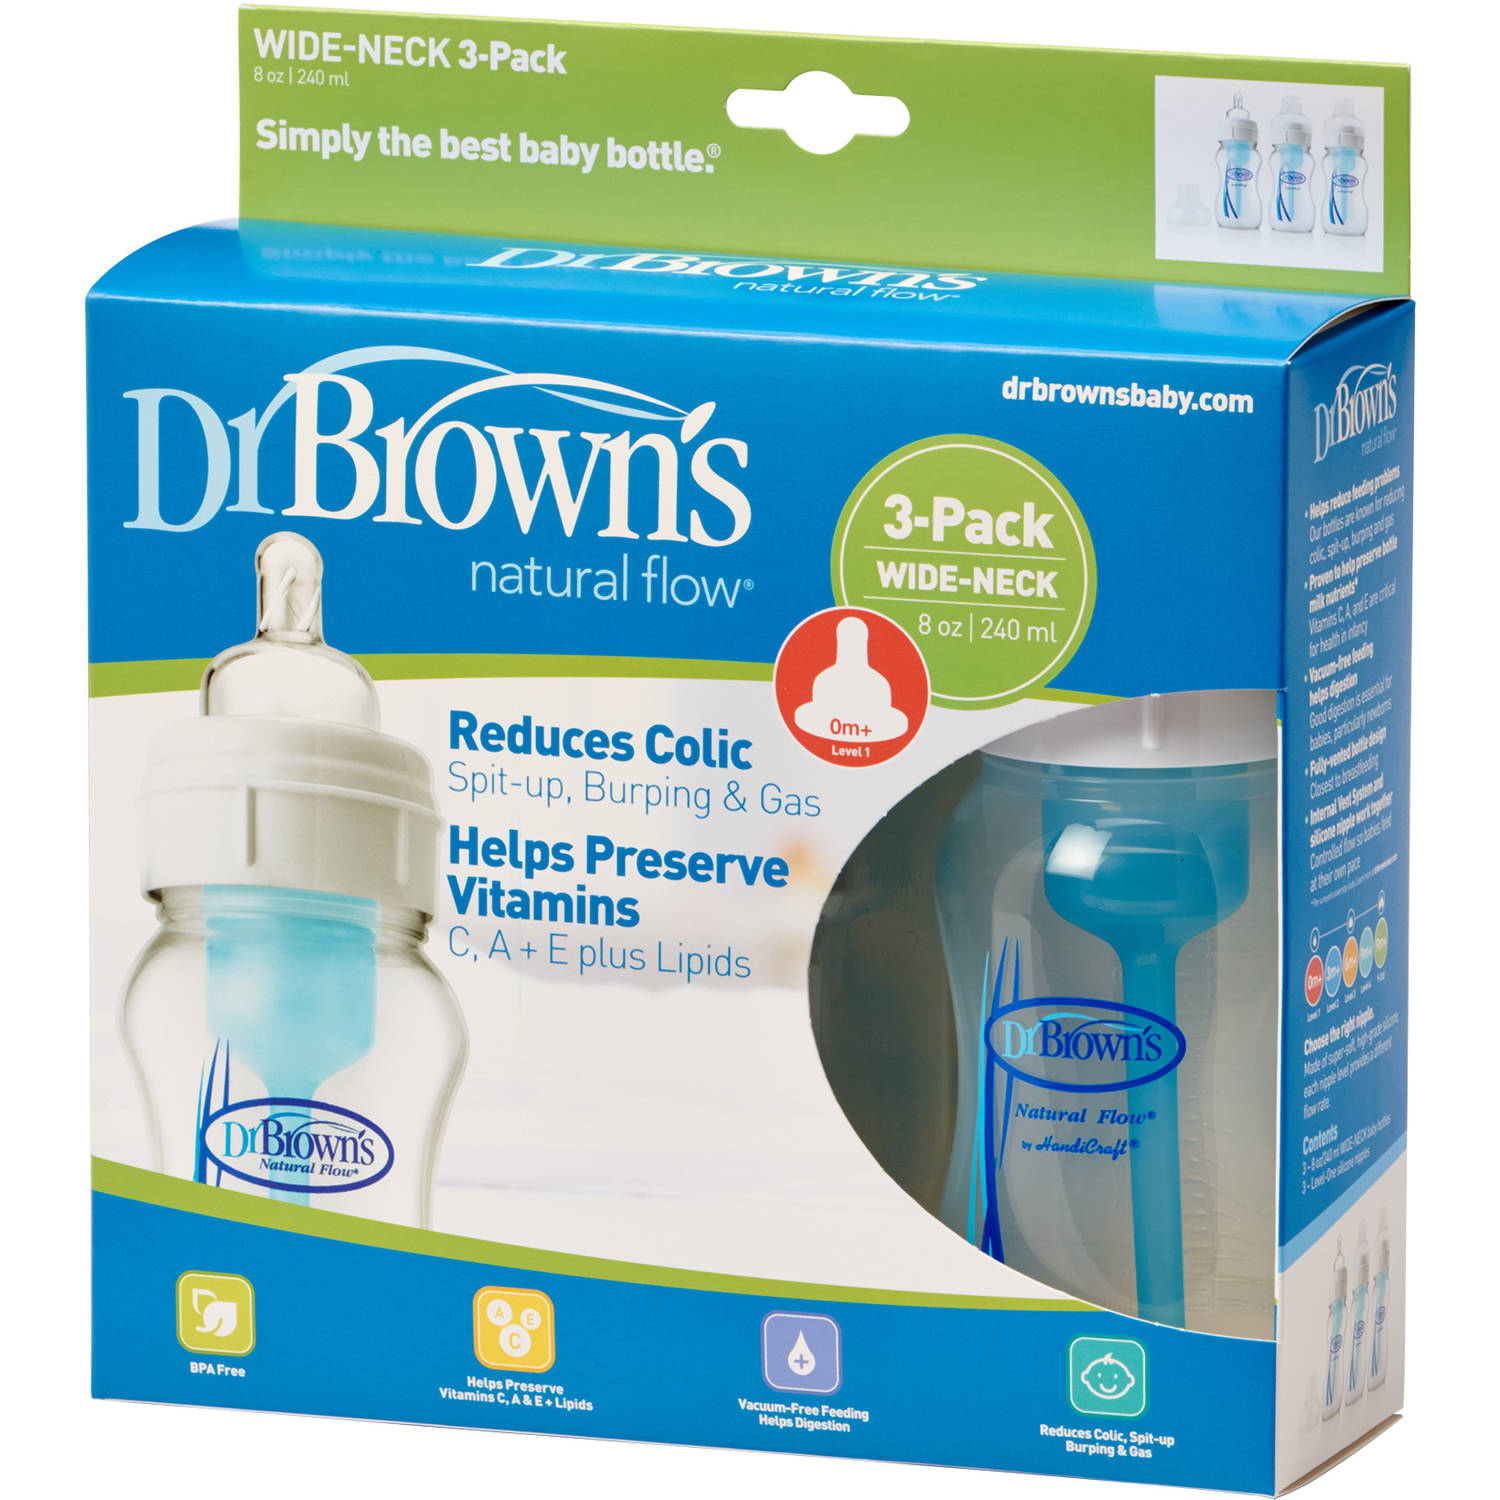 Dr. Brown's Natural Flow 8-oz Wide Neck Baby Bottle, 3-Pack, BPA Free